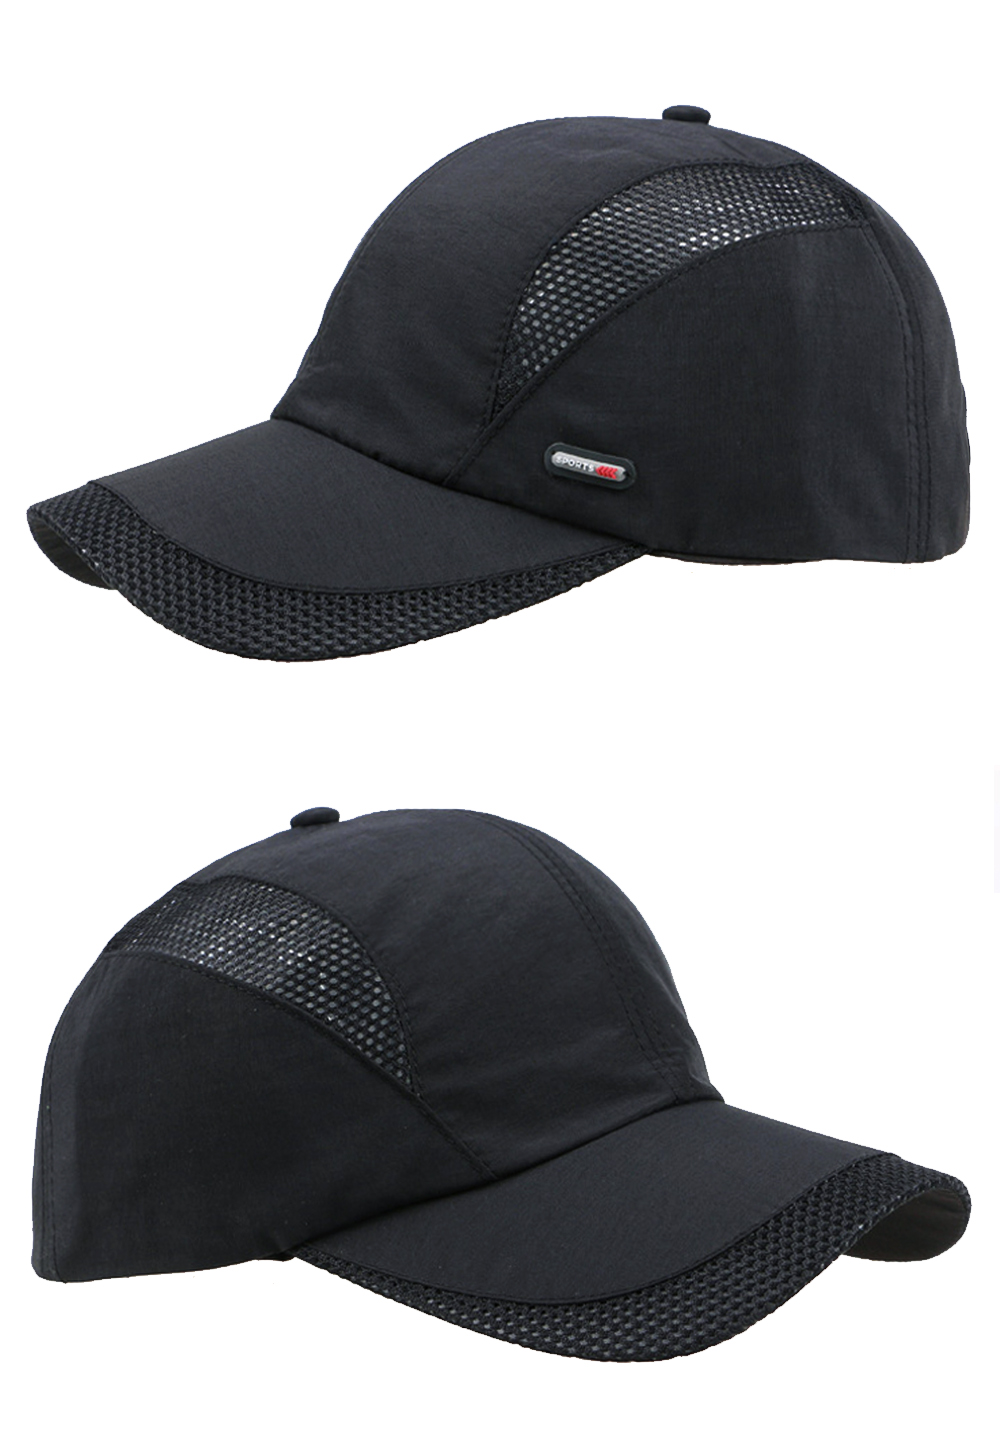 Cool Comfort Breathable Quick Dry Cap - Black Cap Left and Right Angle Views